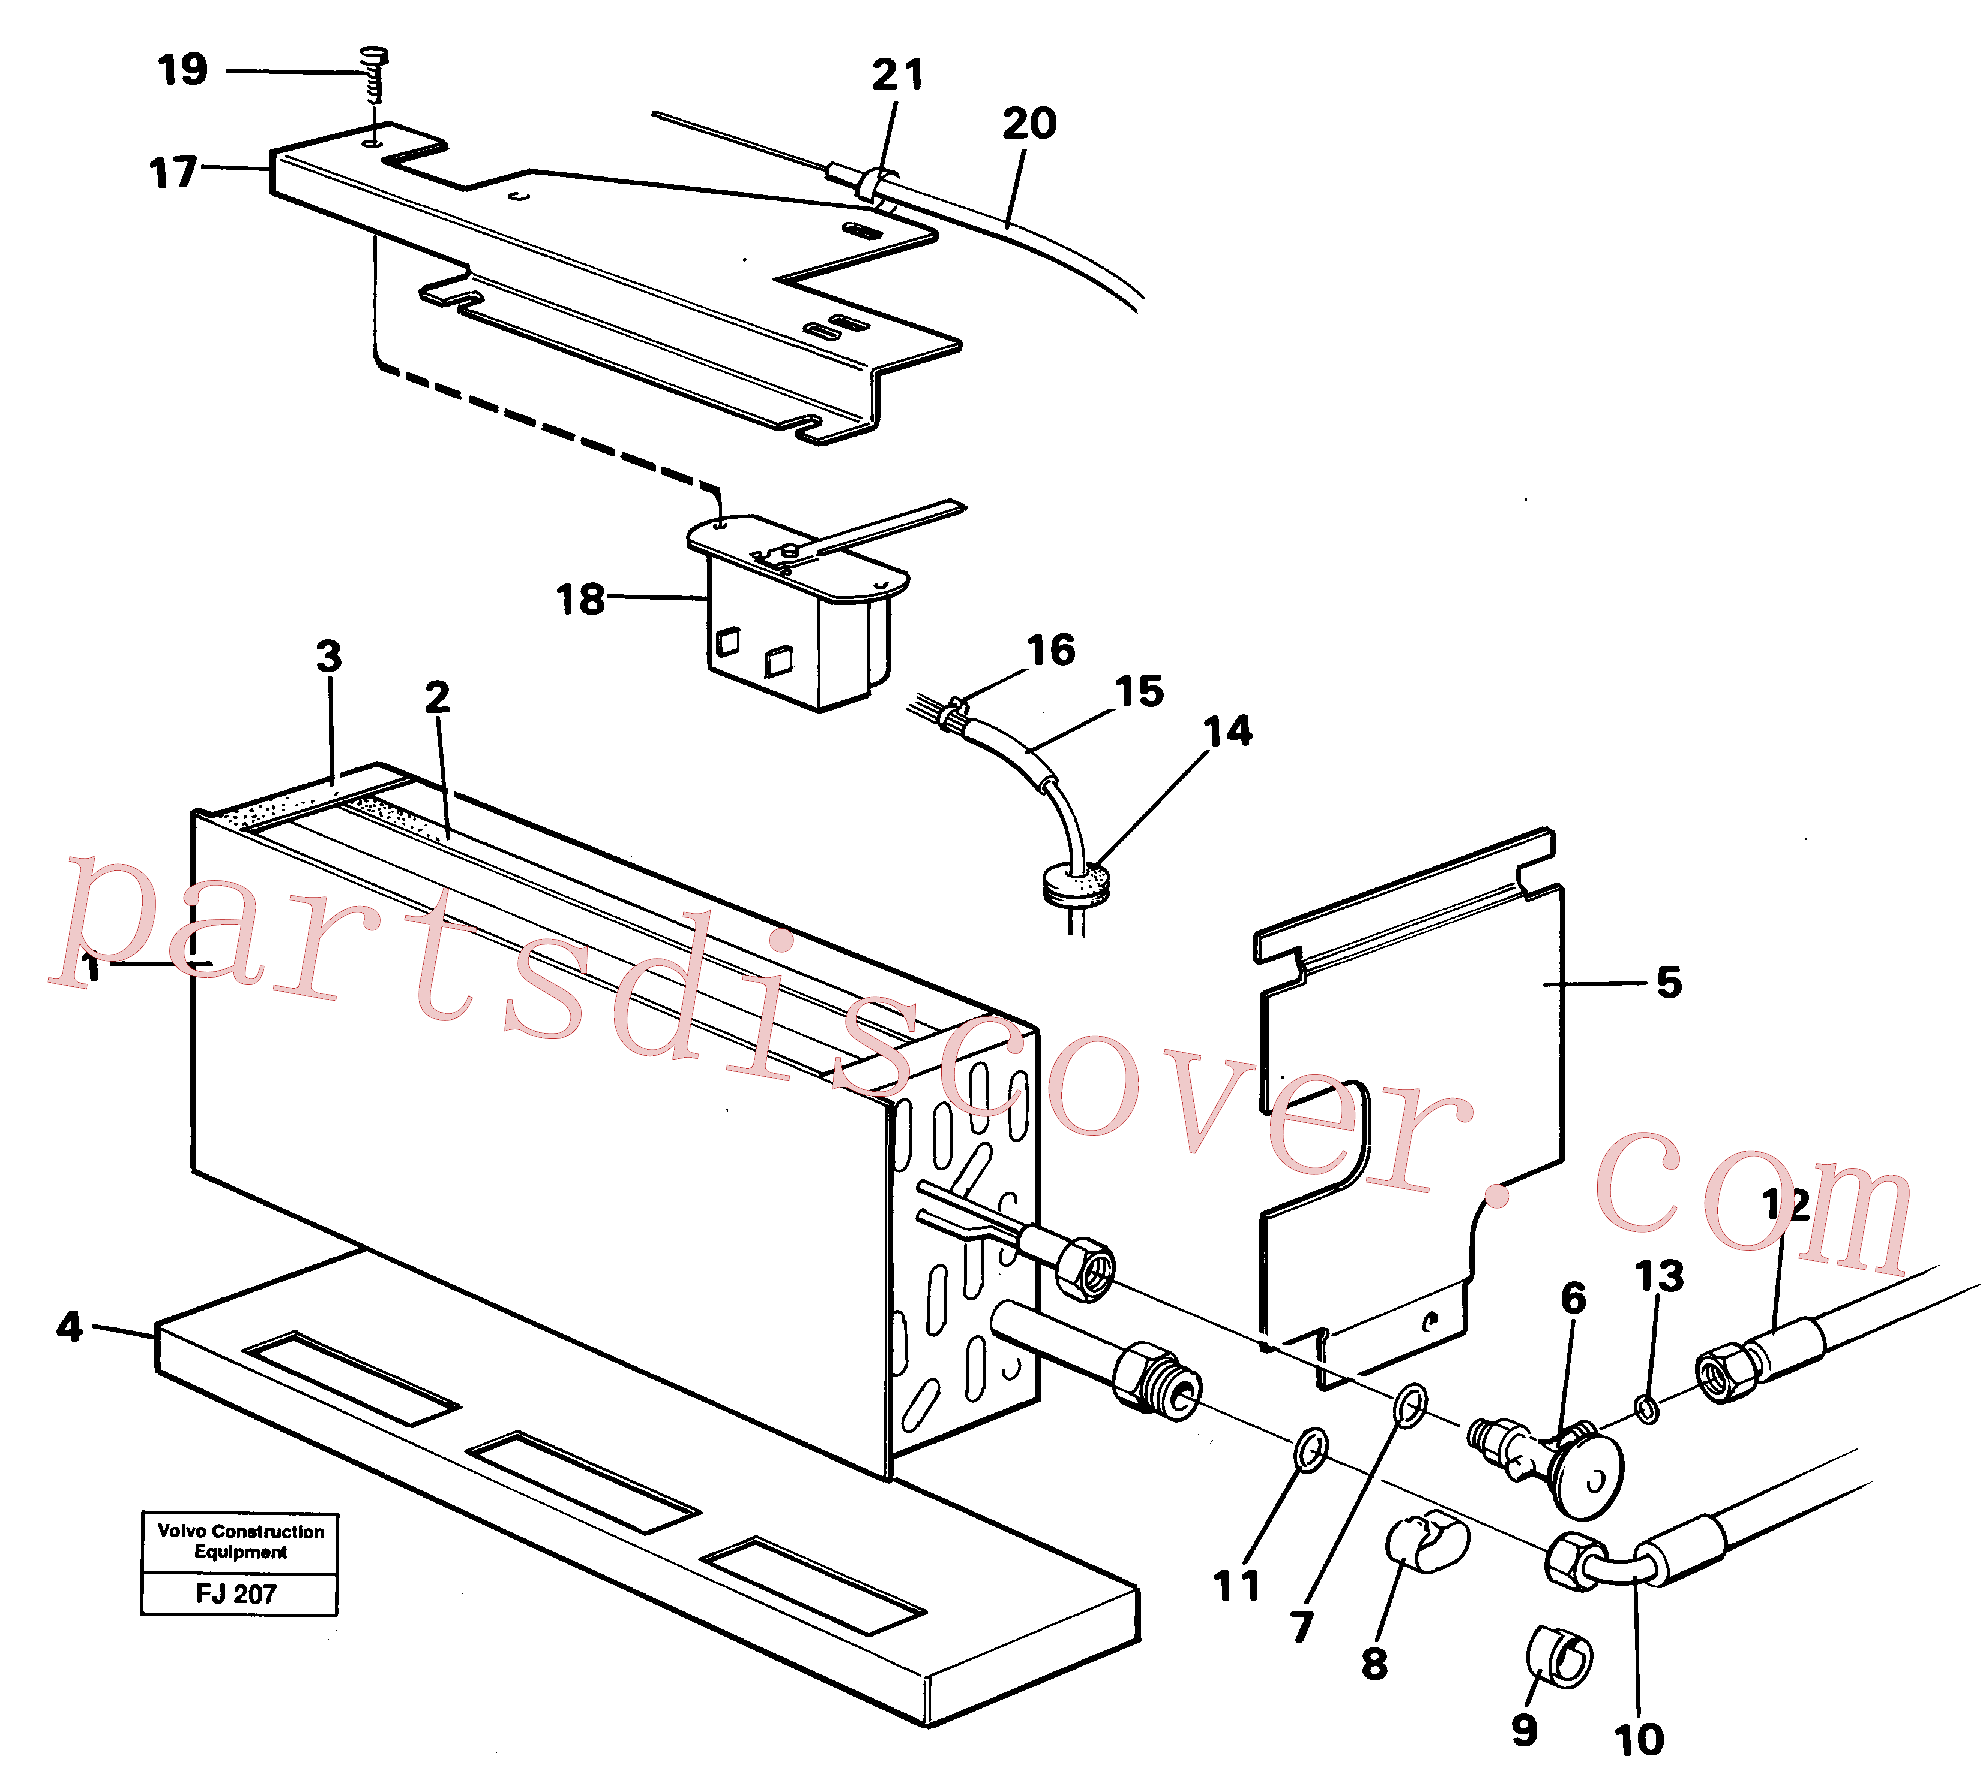 VOE14210342 for Volvo Evaporator with fitting parts Cooling agent R12,r134a(FJ207 assembly)